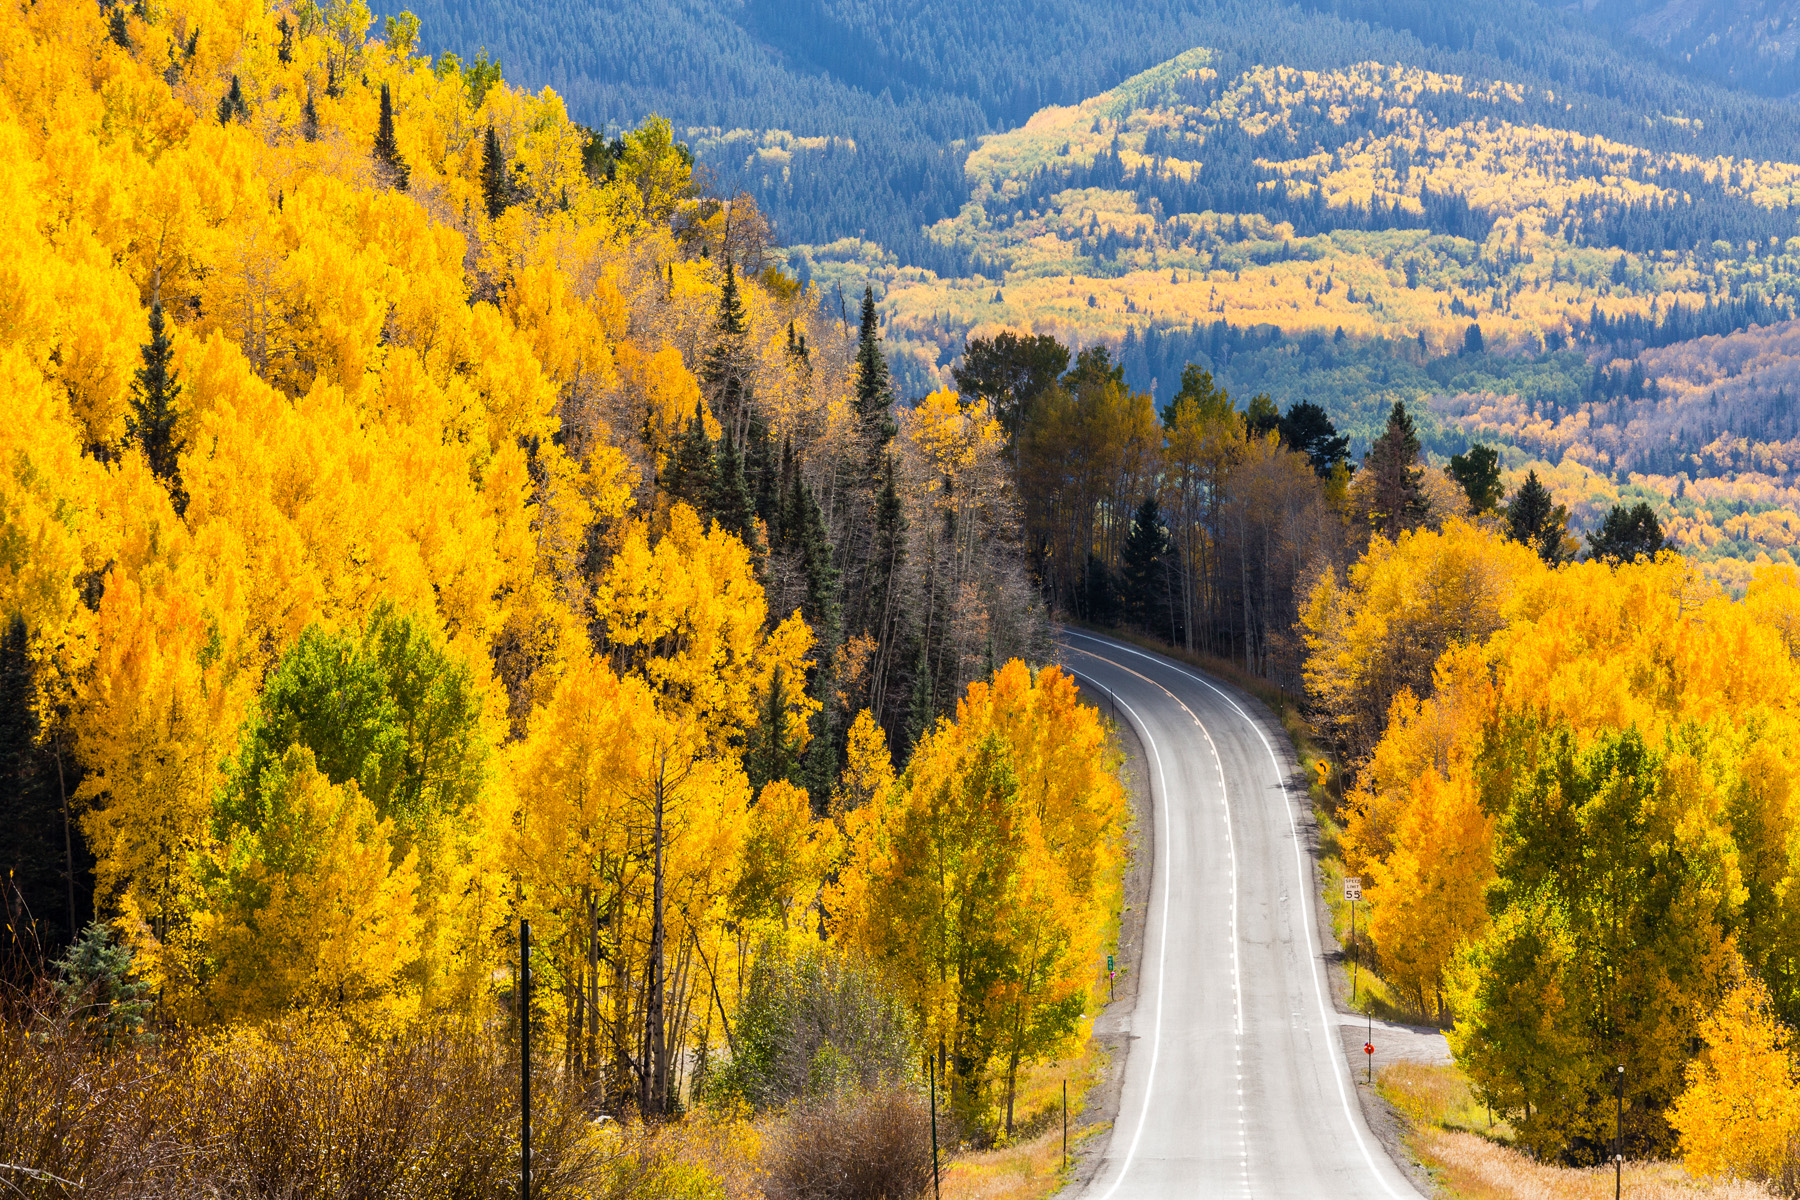 Landscape: A road winds through aspen forests in the San Juan Mountains of Colorado in Autumn near Telluride